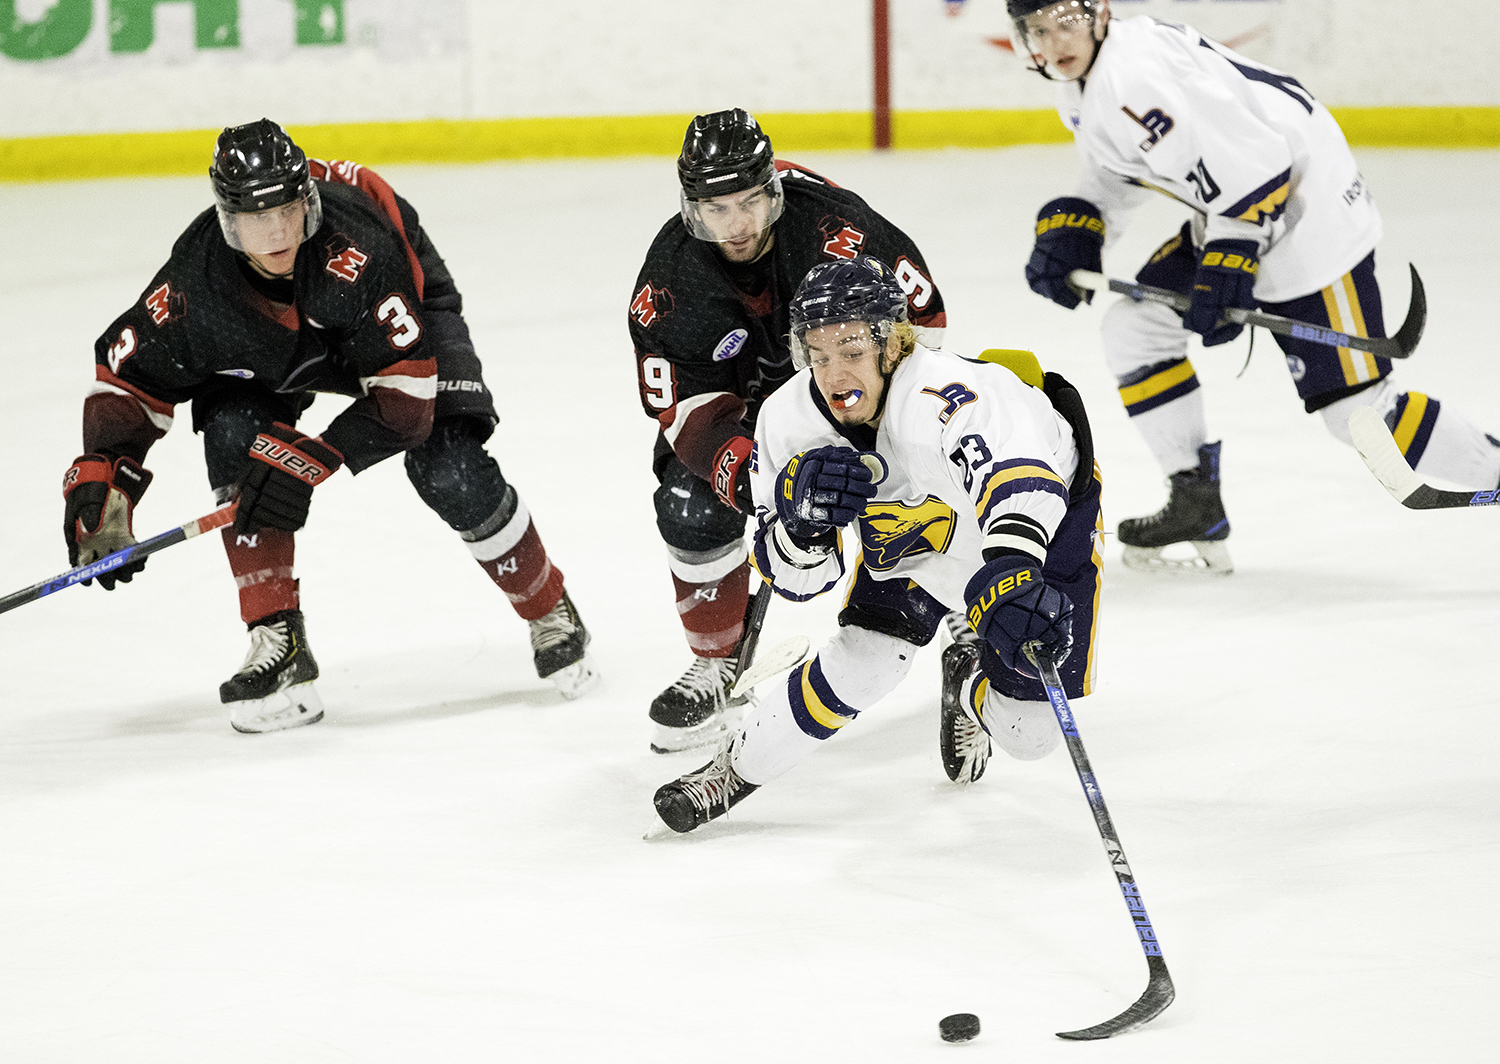 Springfield's Nick Techel lunges for the puck against Minnesota during the North American Hockey League playoff game at the Nelson Center Friday, April 19, 2019. [Ted Schurter/The State Journal-Register]